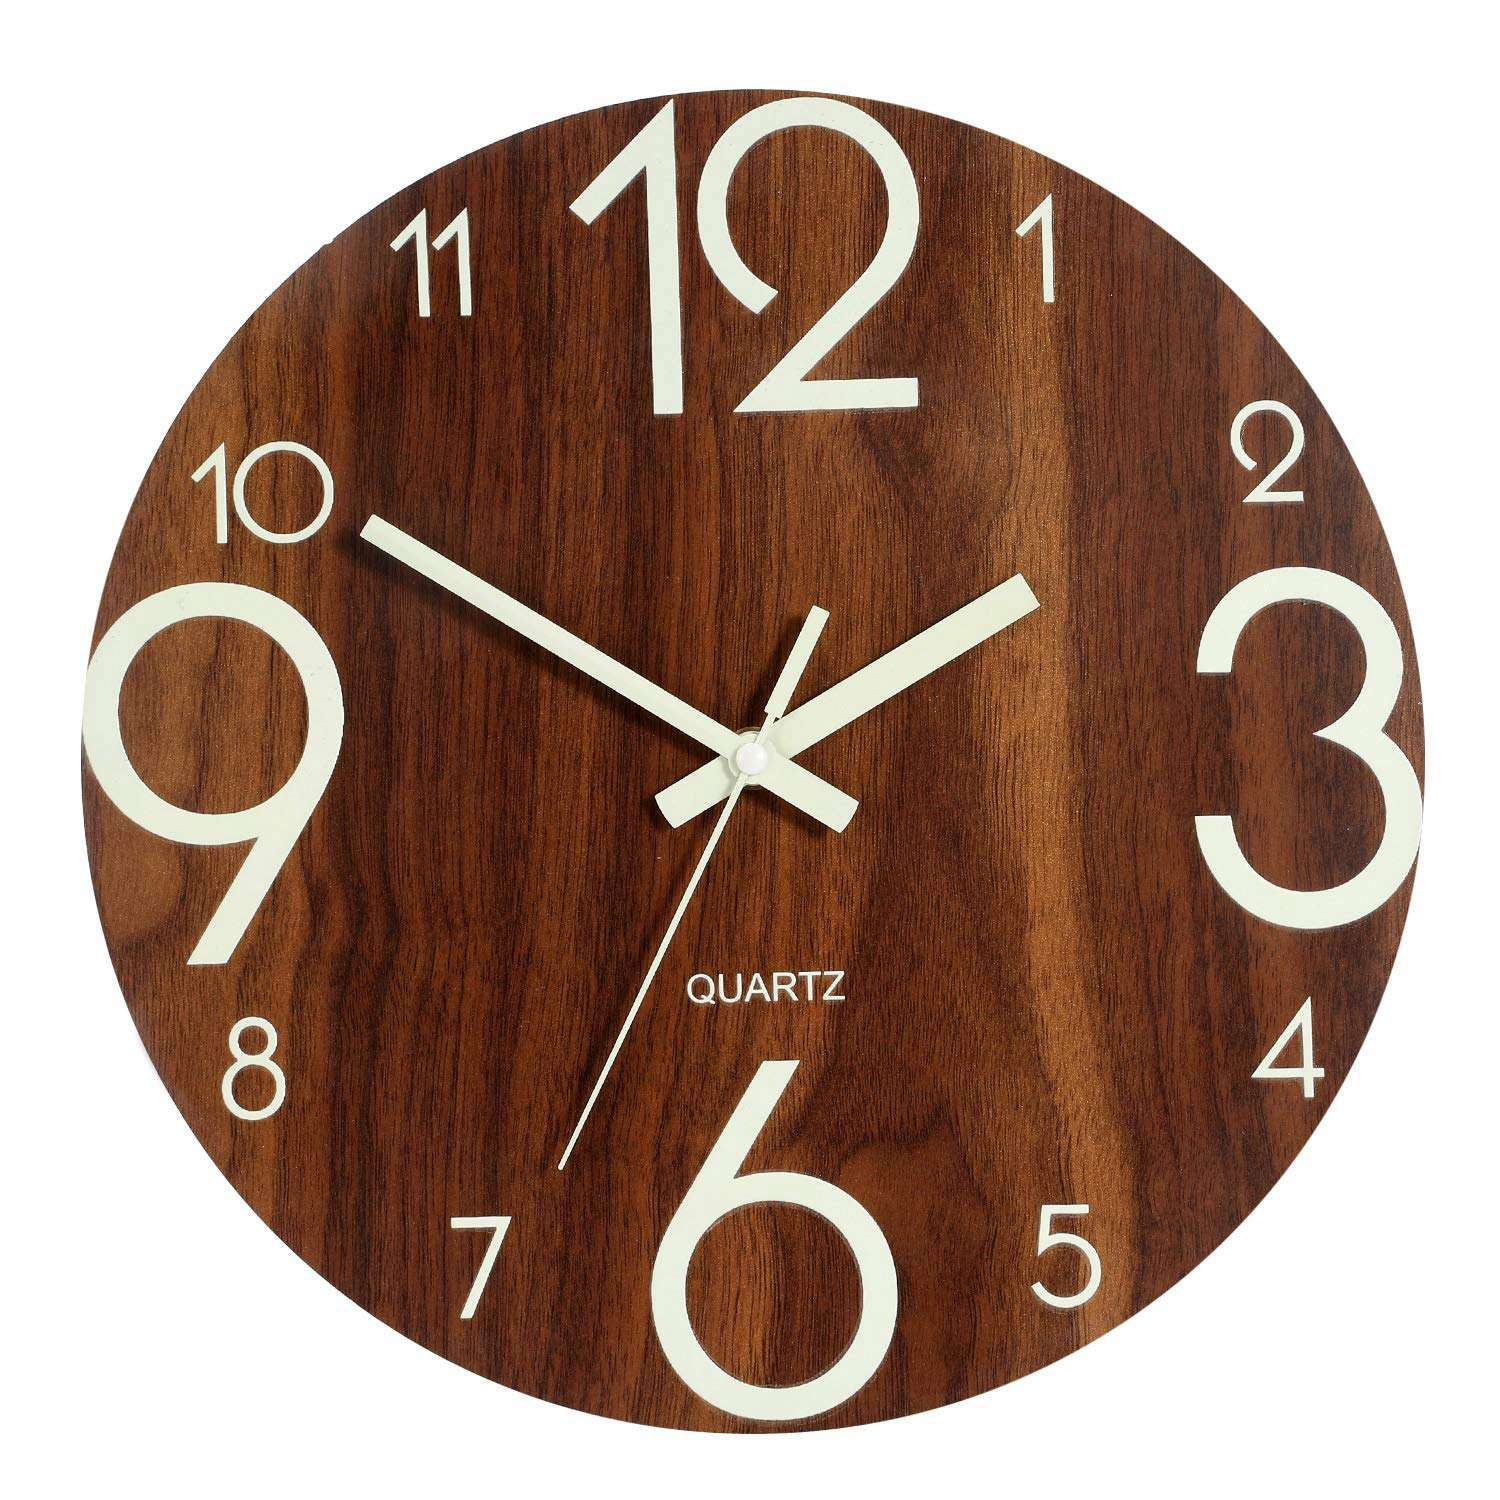 CNIM Hot Luminous Wall Clock Non-Ticking ,12 Inch Wooden Silent Kitchen Wall Clocks With Night Lights For Indoor/Outdoor Living